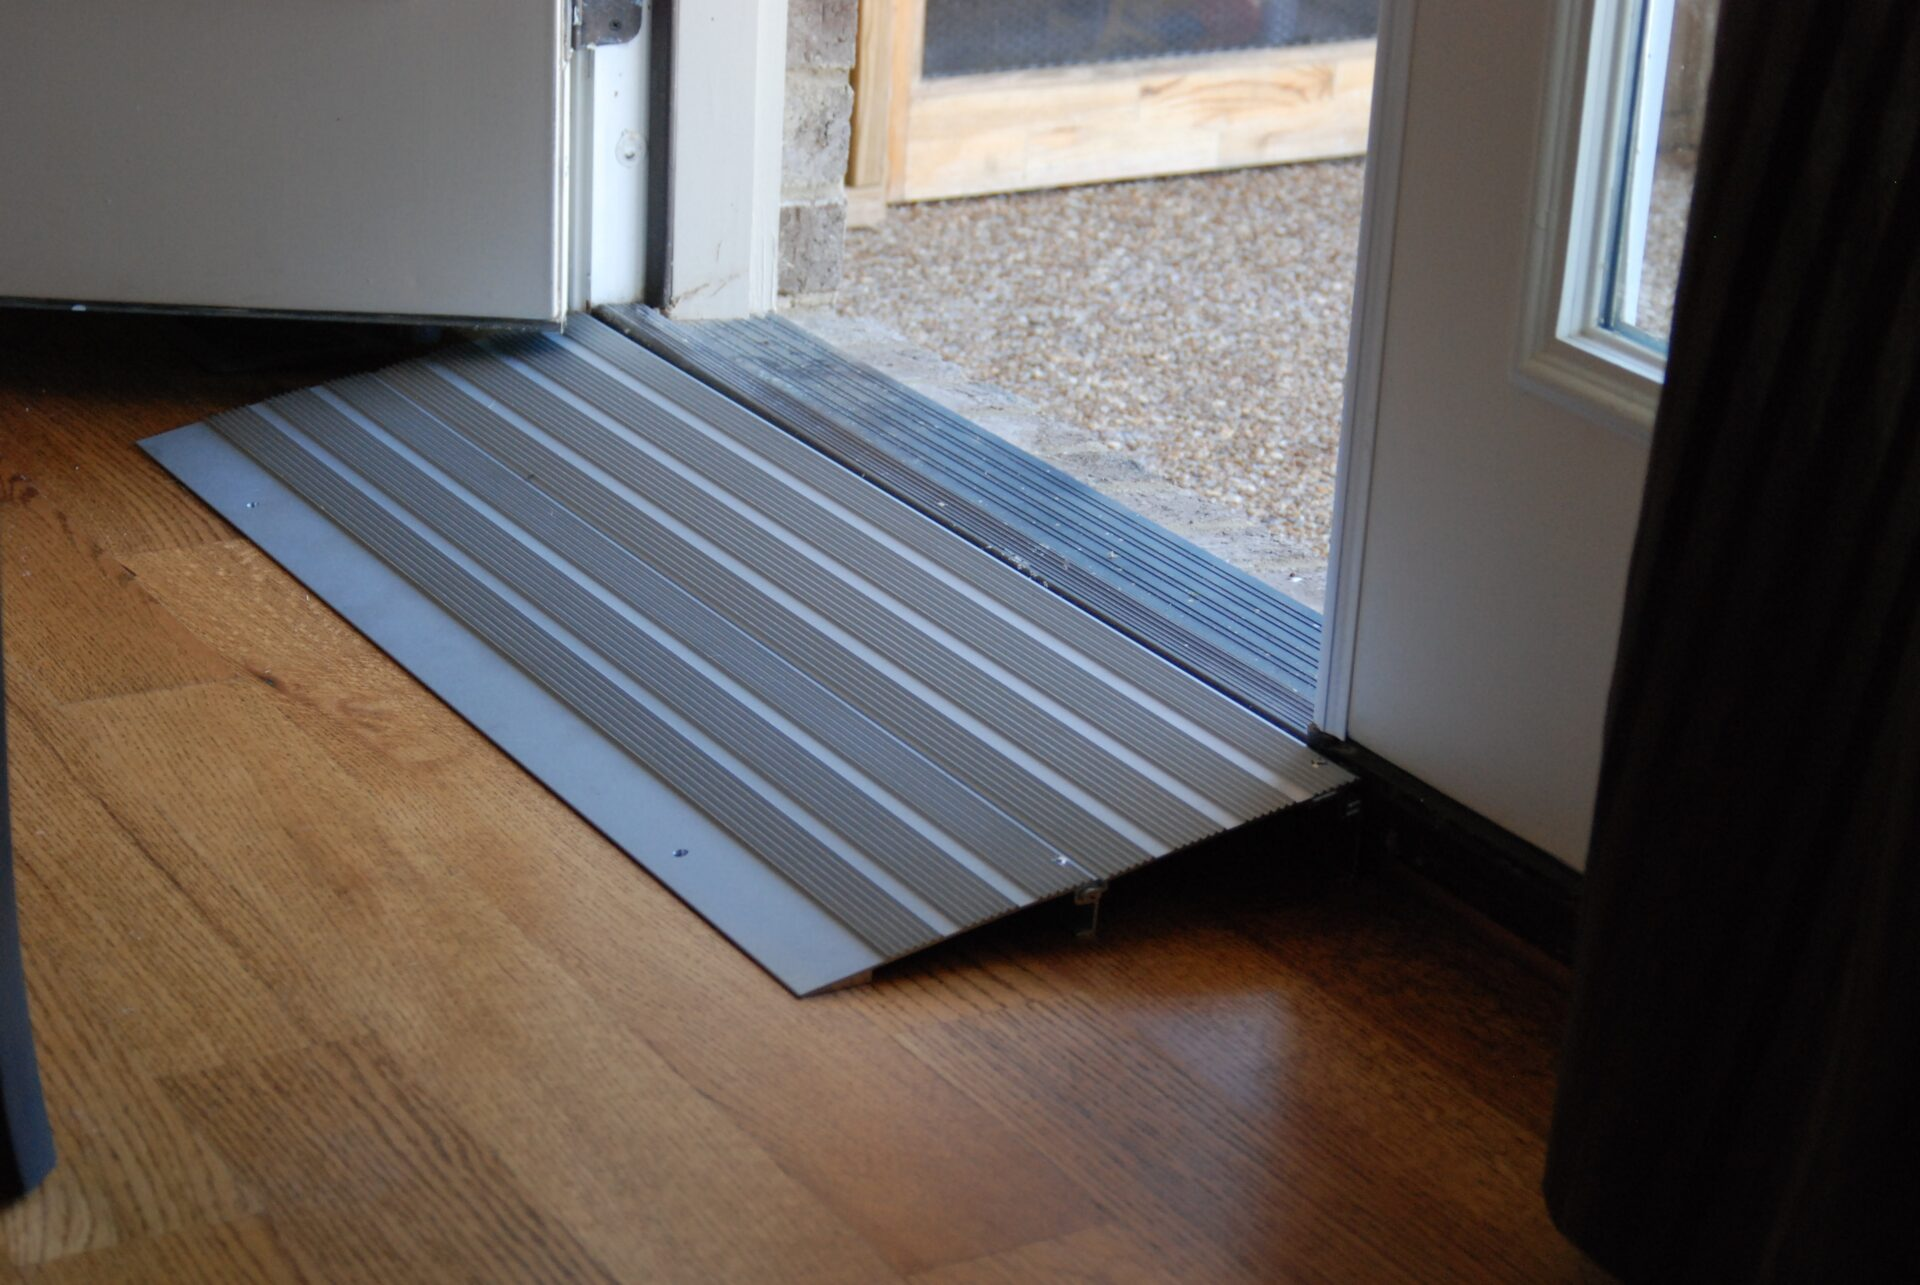 A Threshold Ramp Can Make a Big Difference for Your Holiday Guests